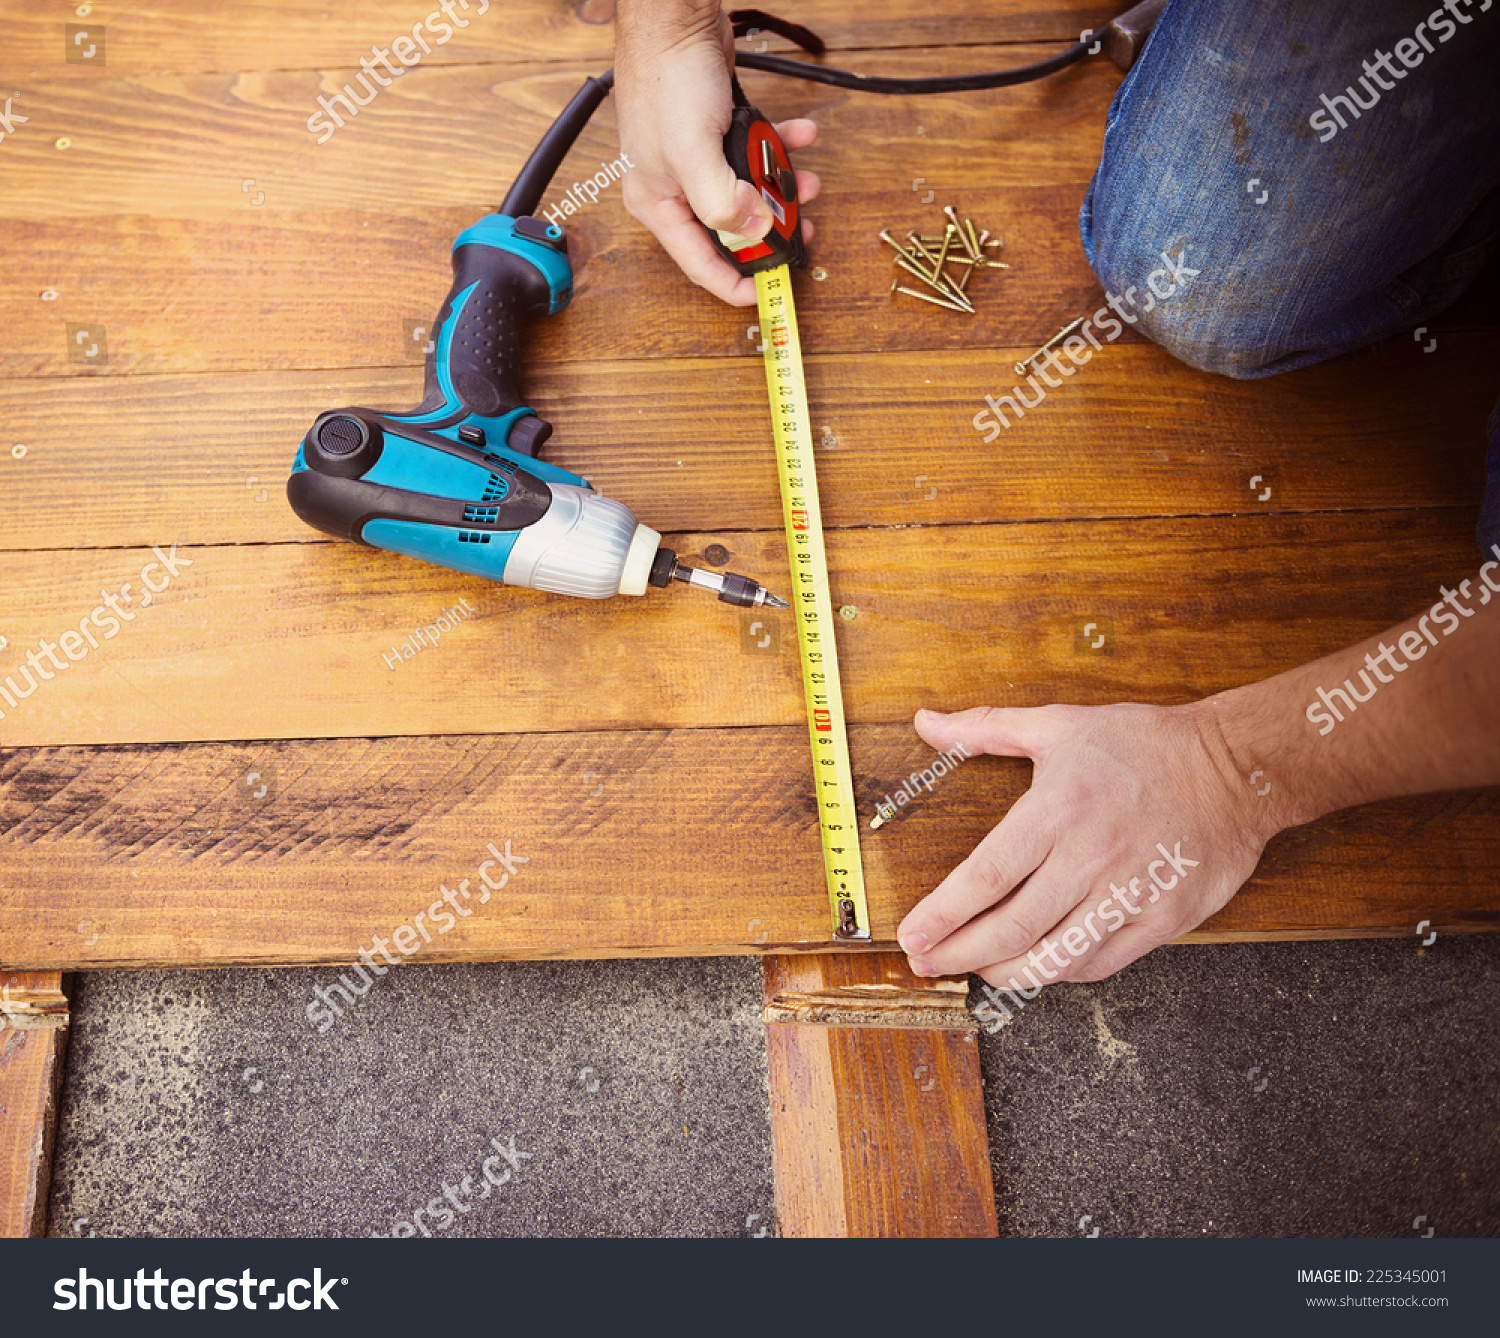 Close Up Of Male Hands Measuring Wood Flooring With Tape Measure